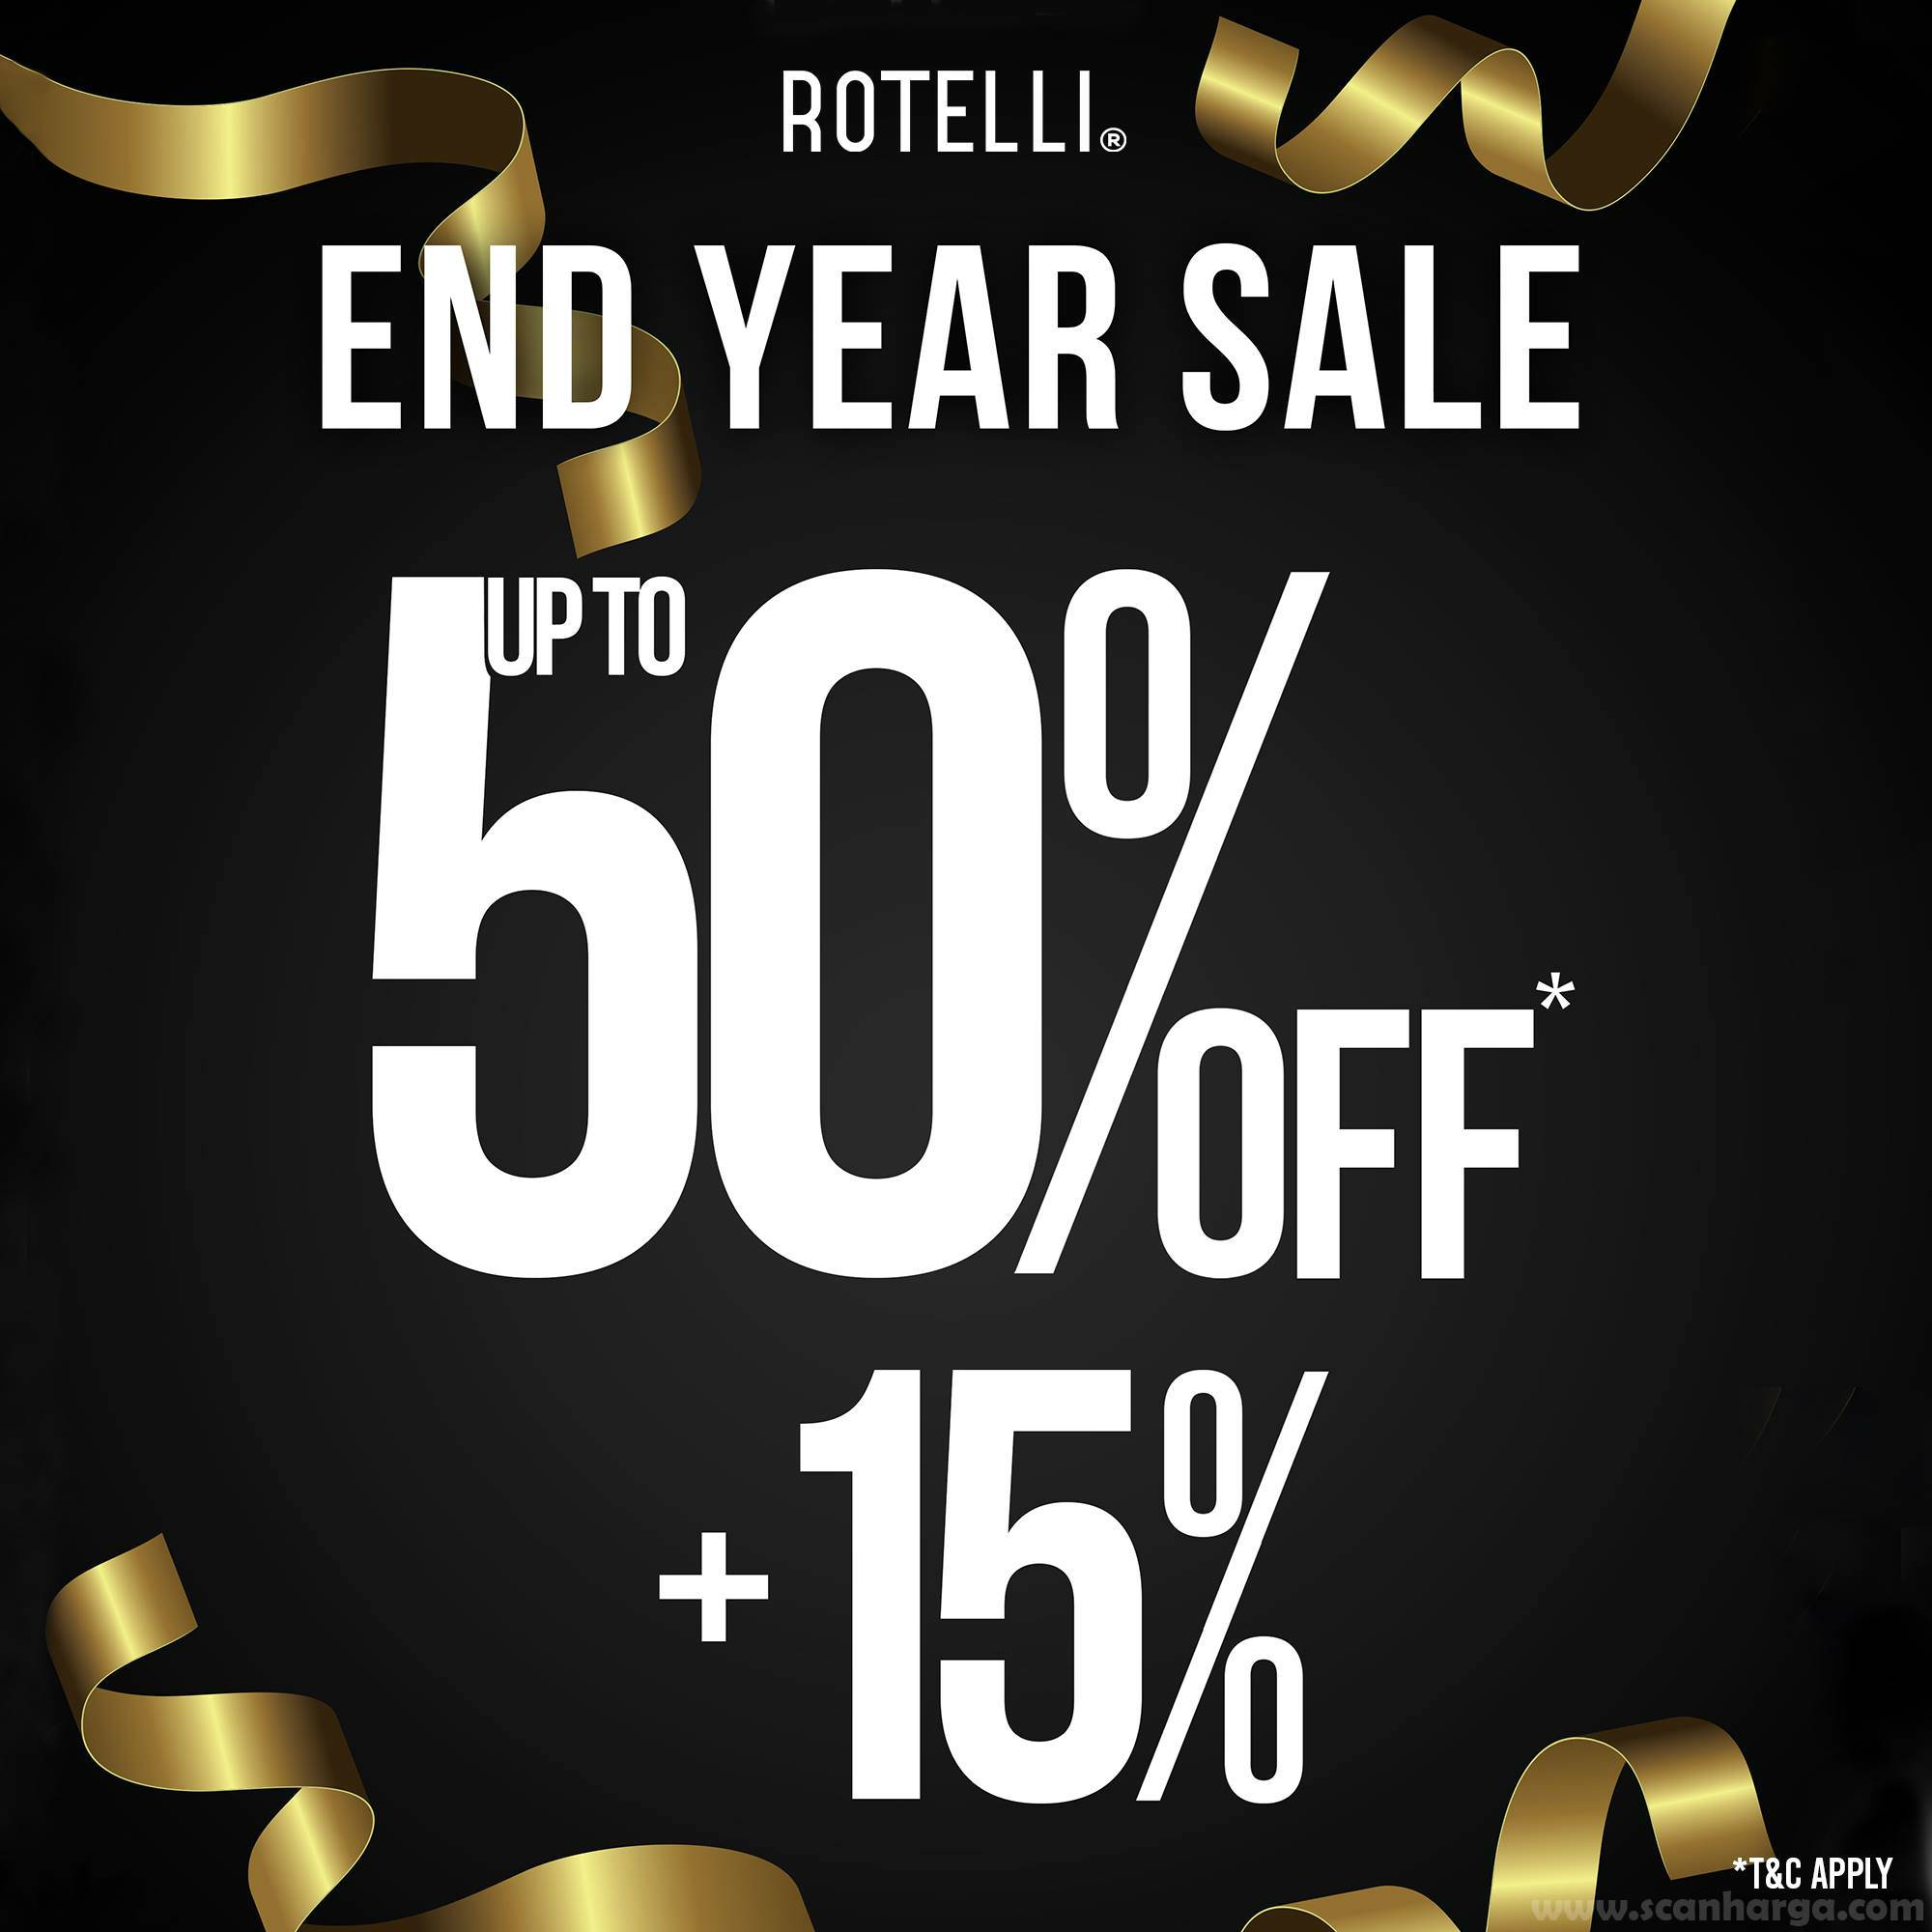 ROTELLI Promo End Year SALE Disc. Up To 50% Off + 15%